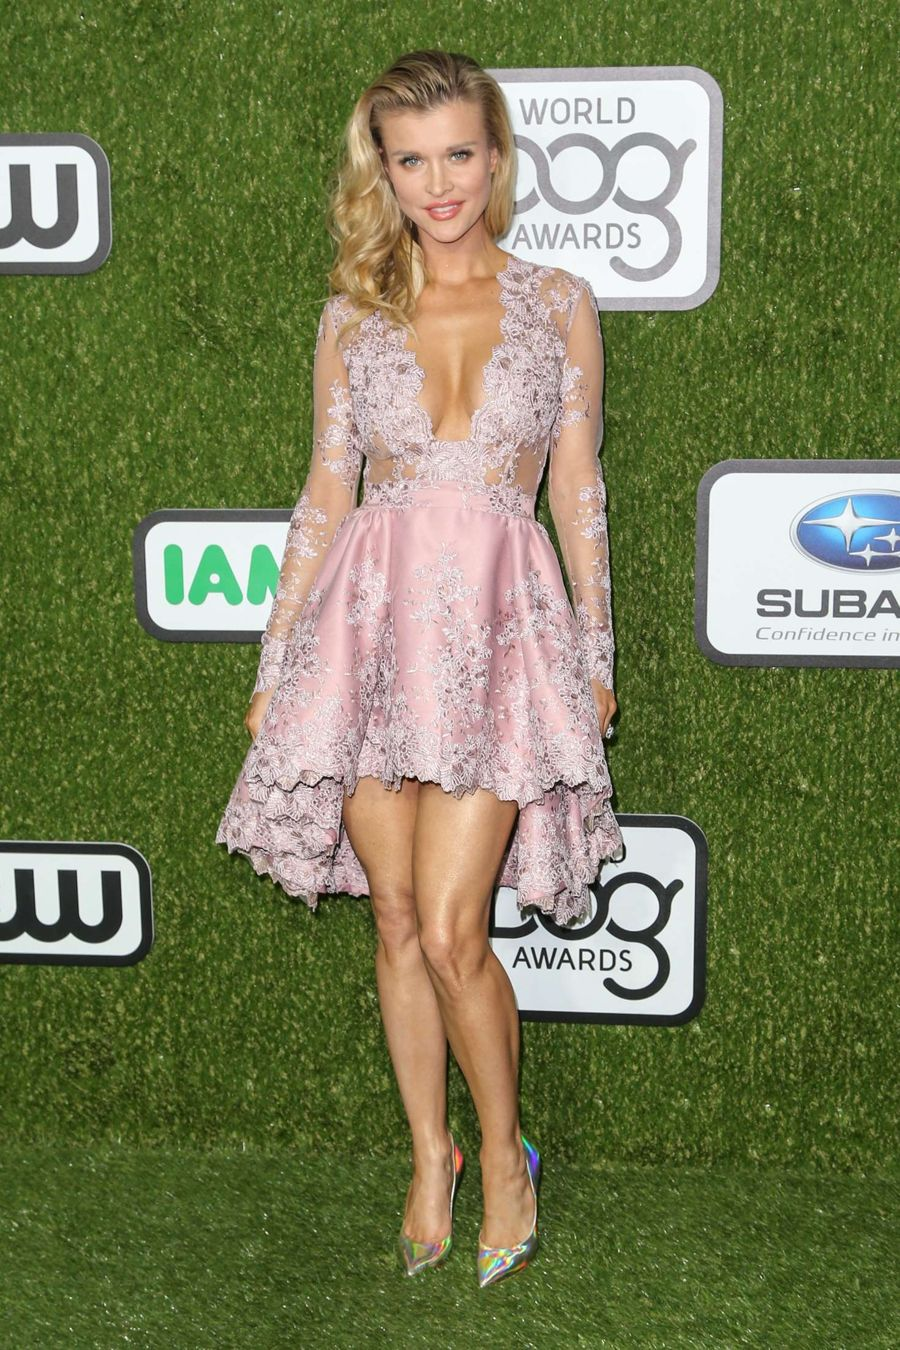 Joanna Krupa - 2016 World Dog Awards in Santa Monica